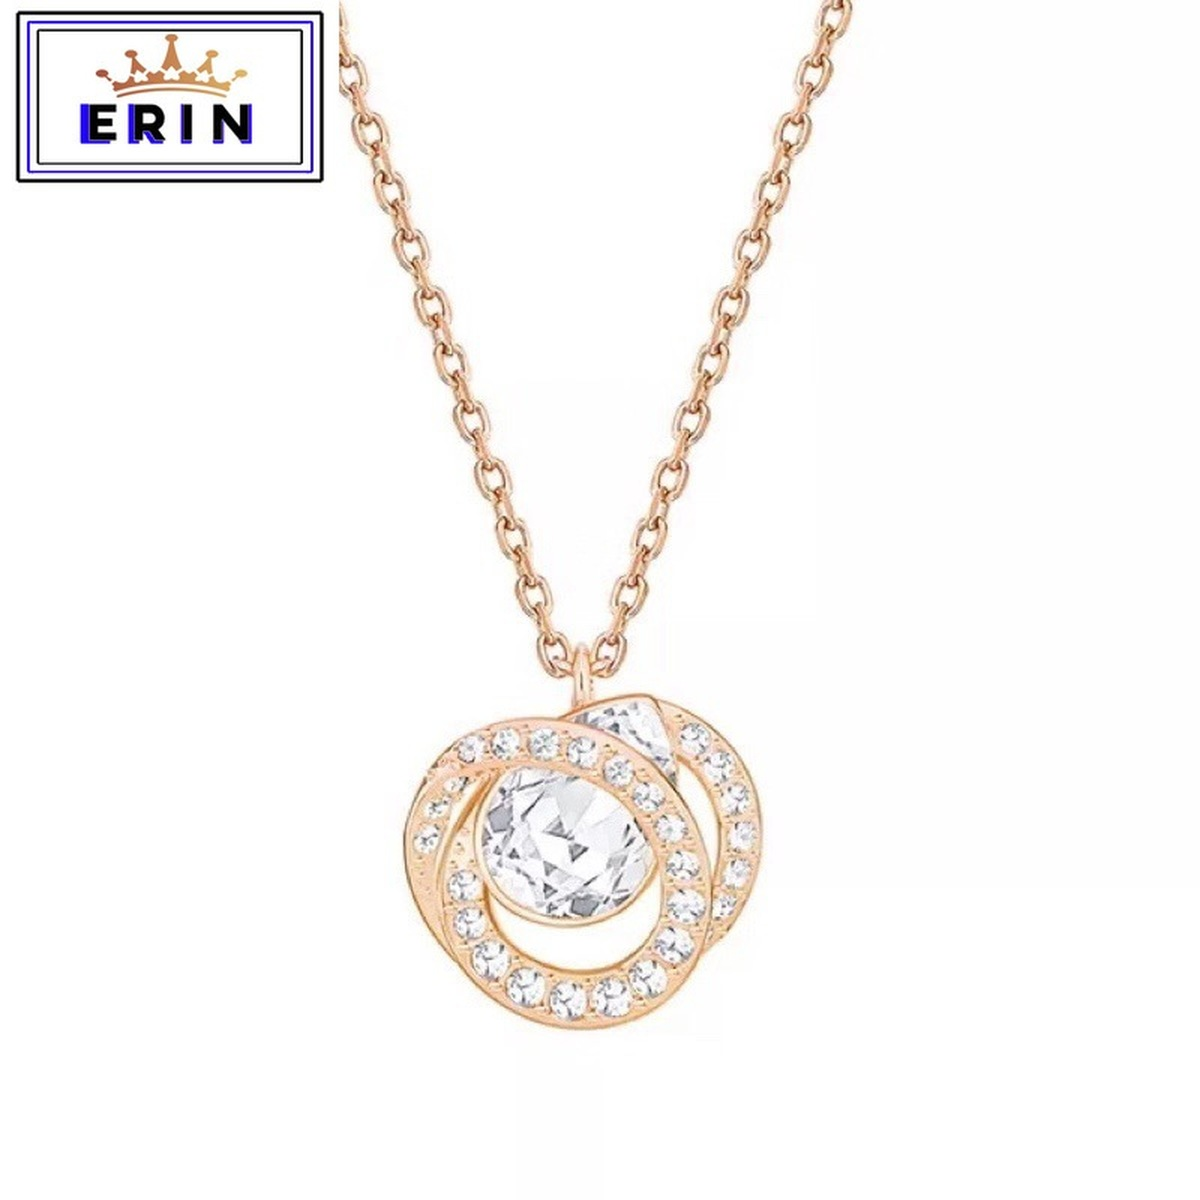 ERIN  High quality SWA, fashion button double  pendant women's spiral crystal all-around Chain Necklace